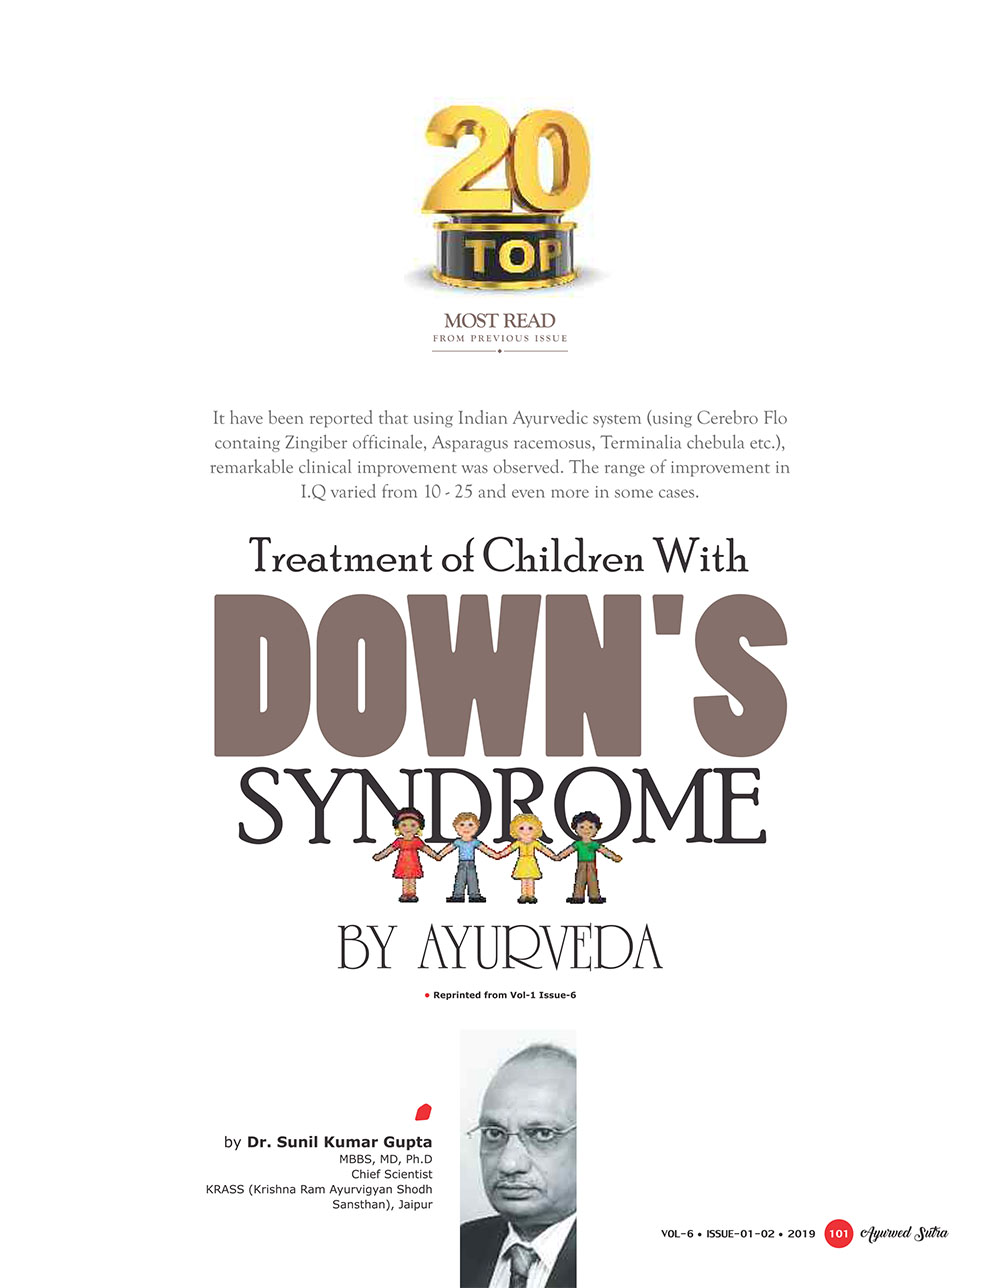 Ayurvedsutra Vol 06 issue 01 02 103 - Treatment of Children with Down's Syndrome